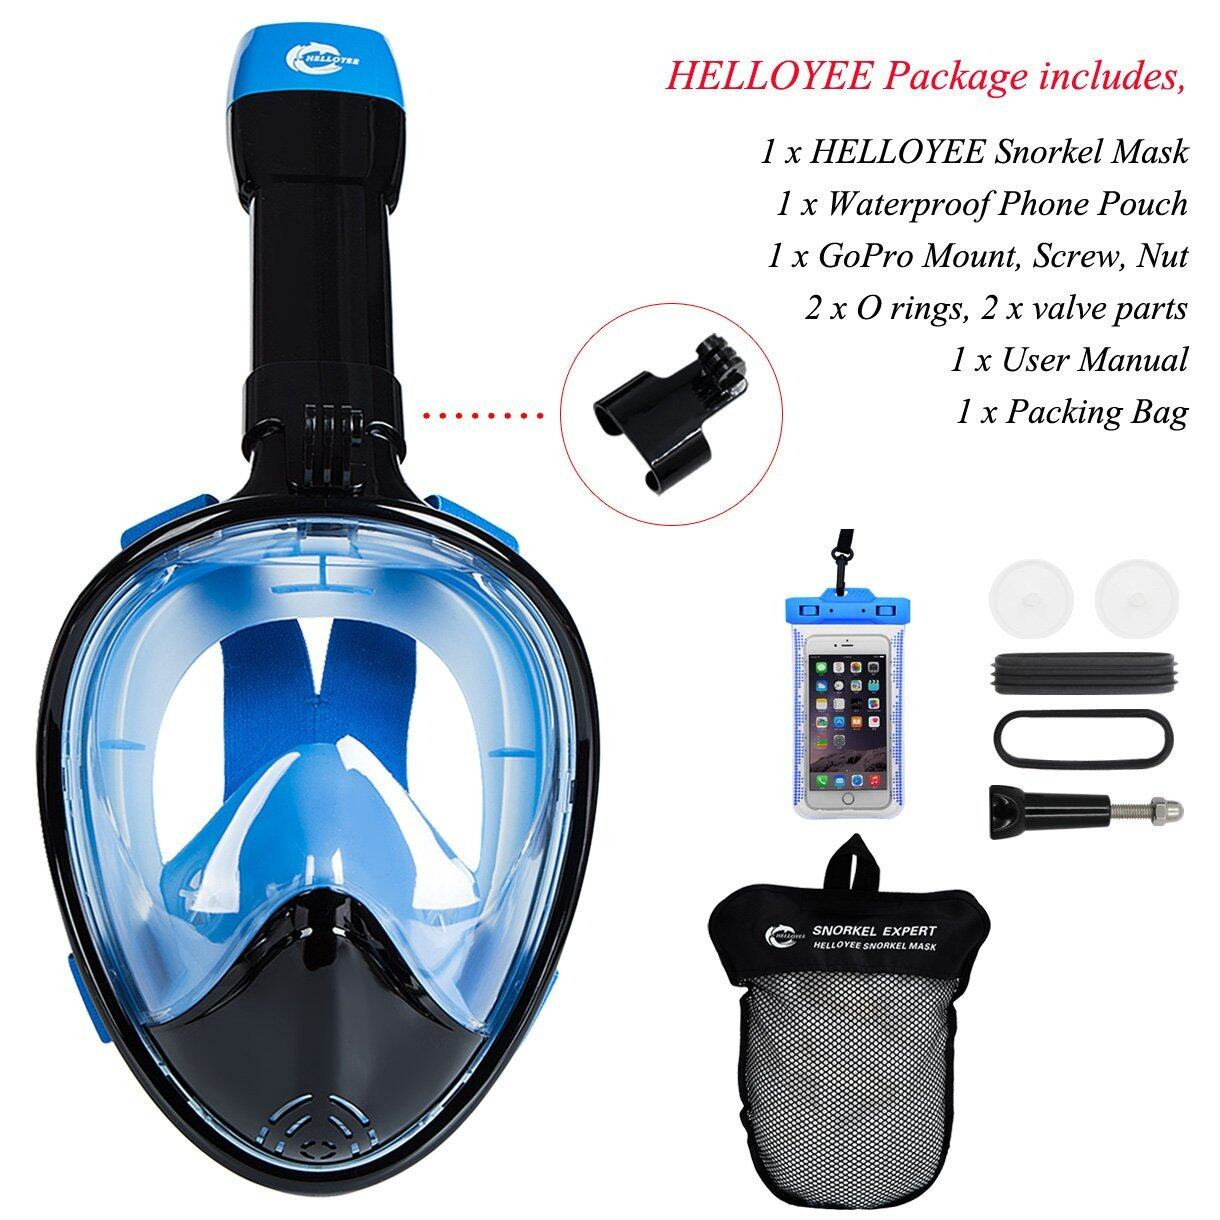 HELLOYEE Full Face Snorkel Mask 180° Panoramic View Breathe Free For Adults And Kids 1